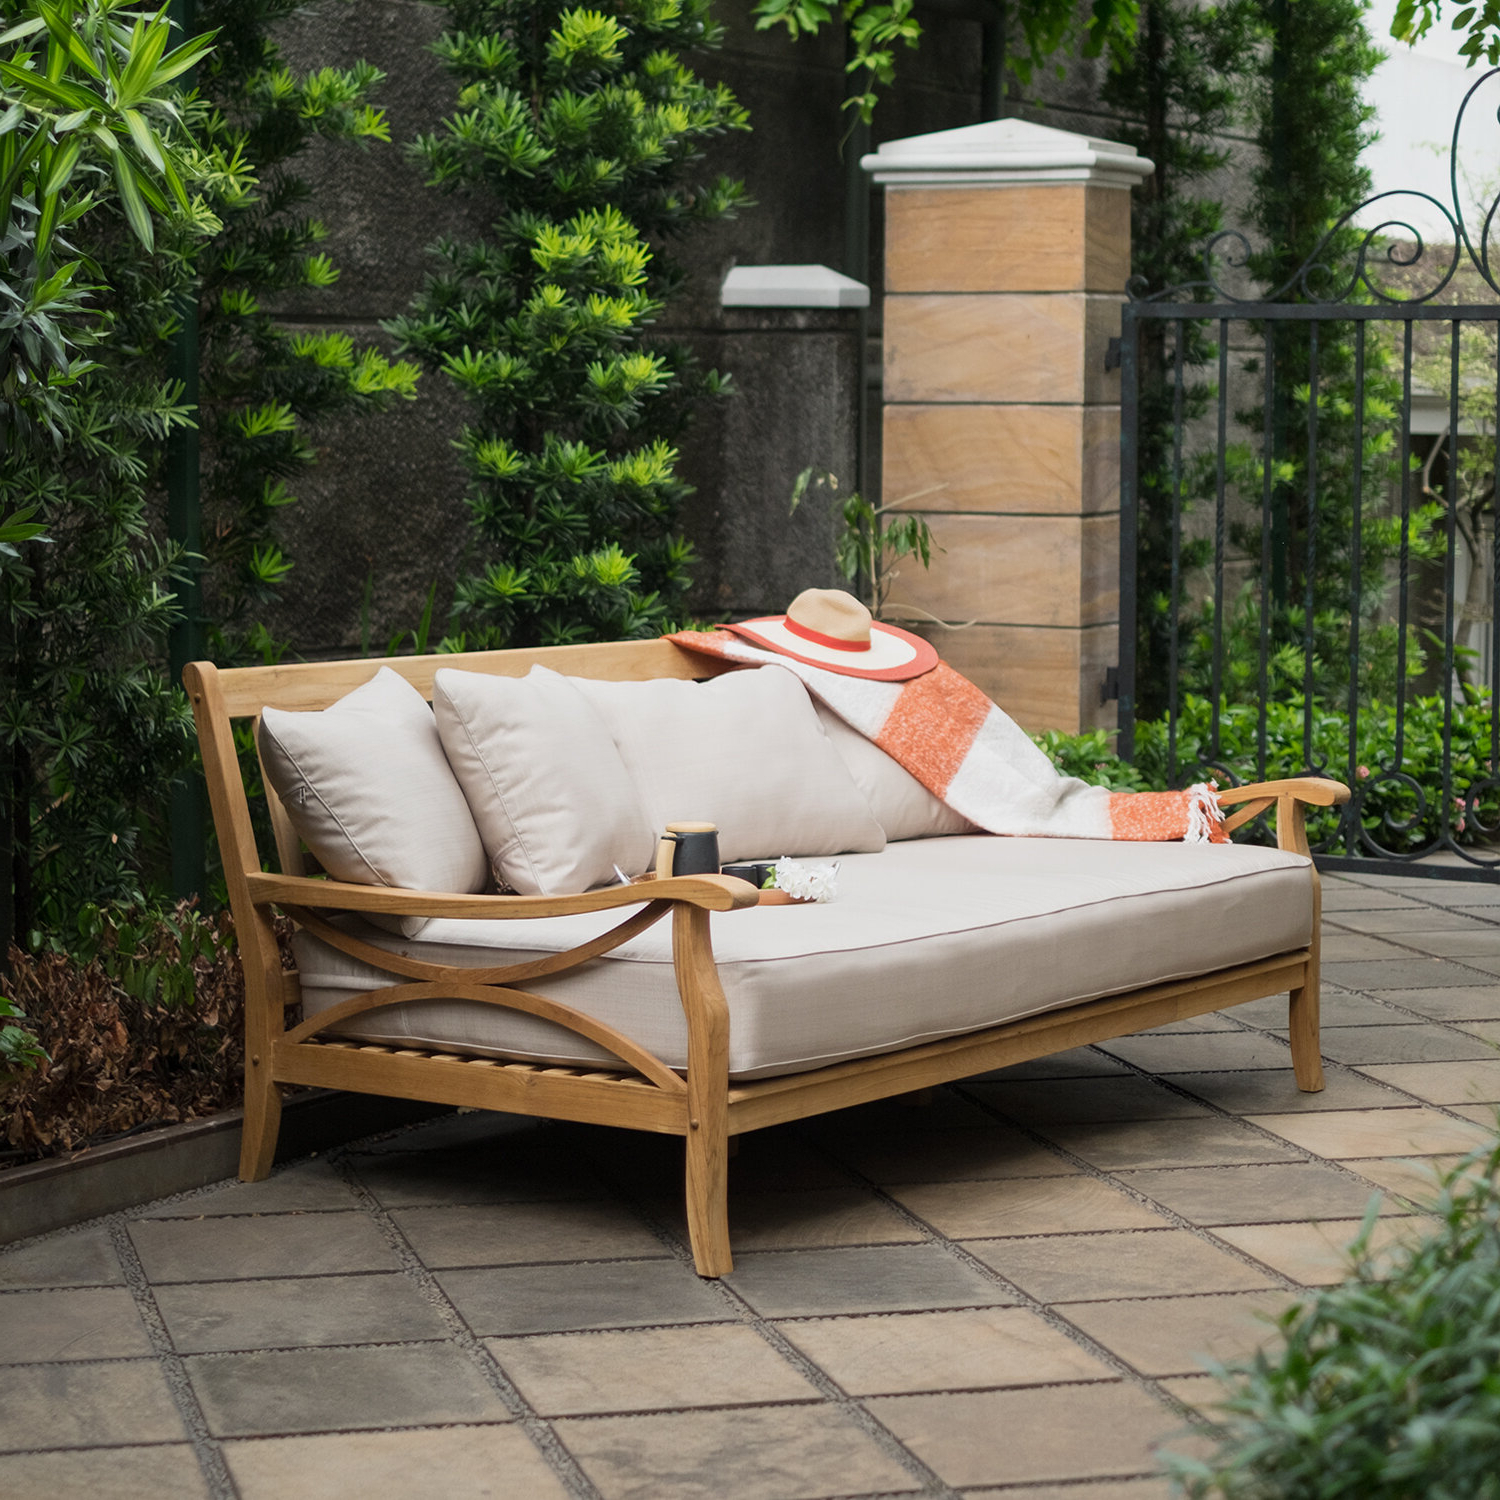 Best And Newest Beal Patio Daybeds With Cushions With Regard To Brunswick Teak Patio Daybed With Cushions (View 7 of 25)